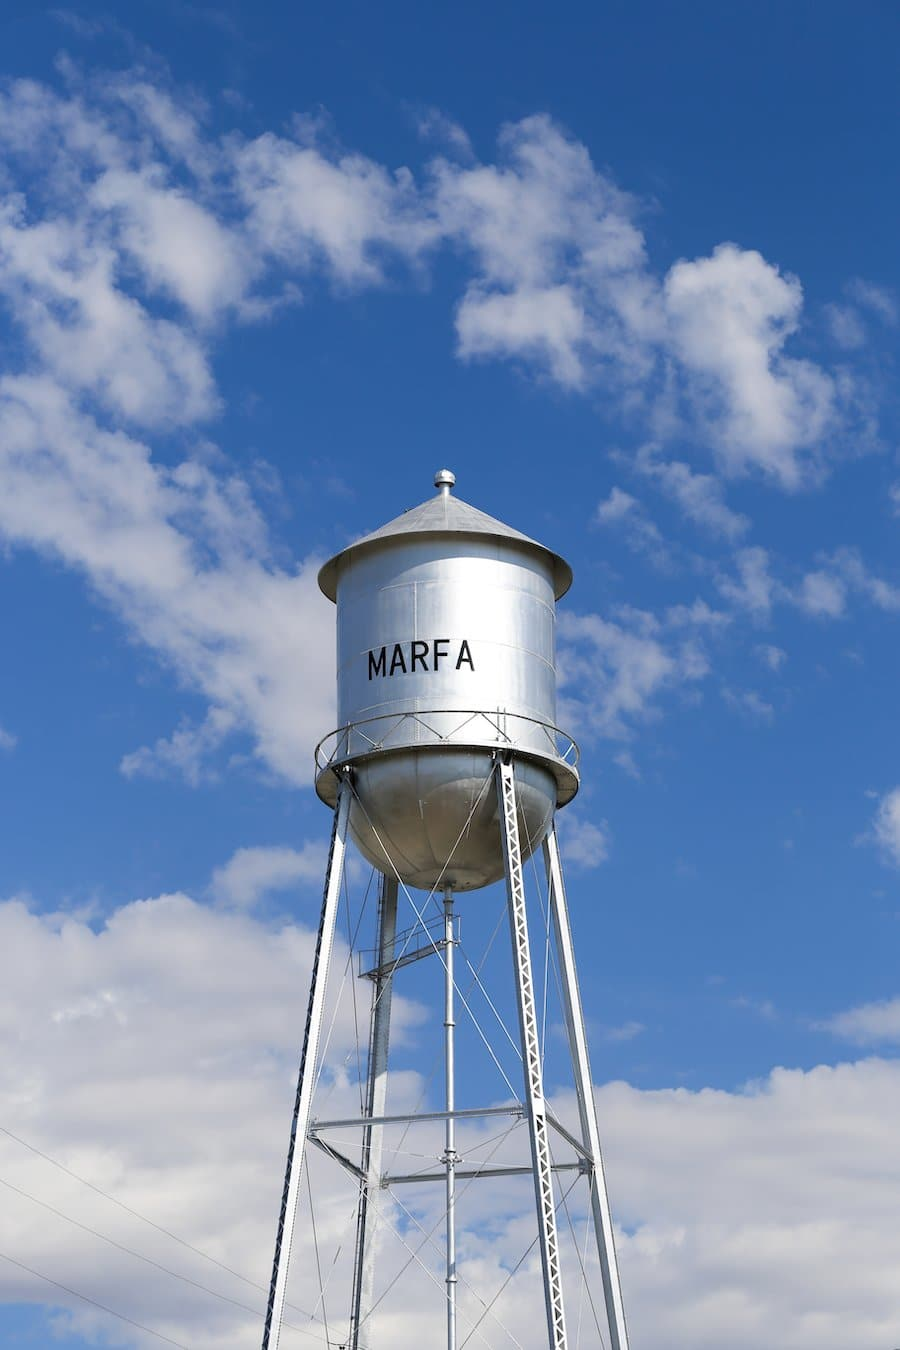 Water tower with word Marfa on it against blue sky with clouds in Marfa, Texas